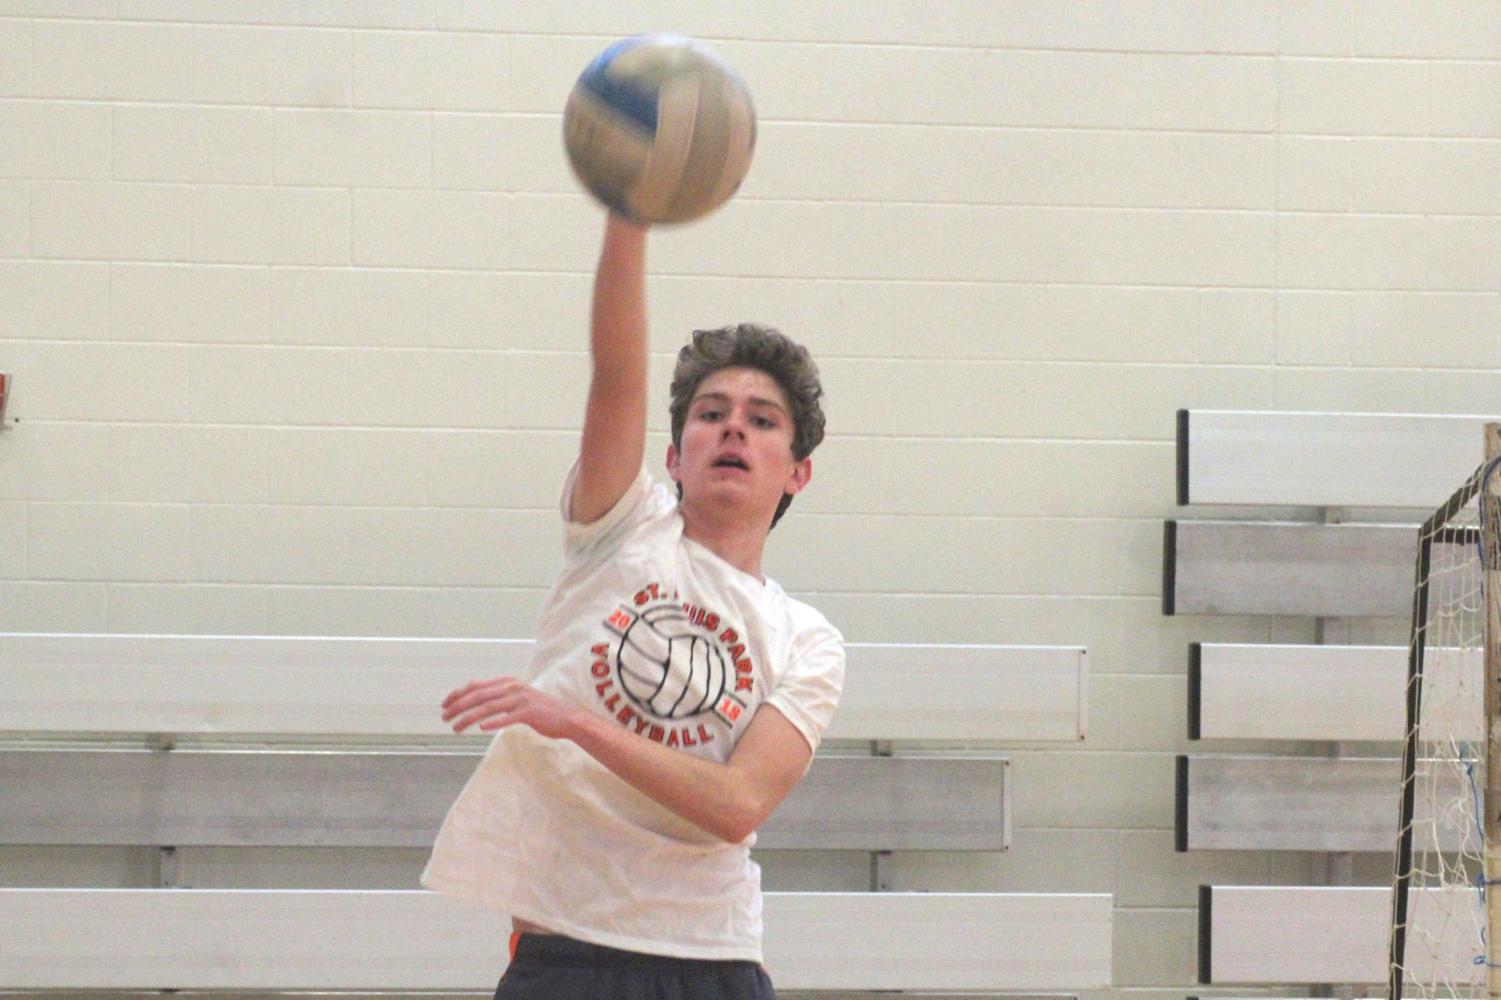 Sophomore Ryan Barnett serves the ball during the junior varsity volleyball practice.